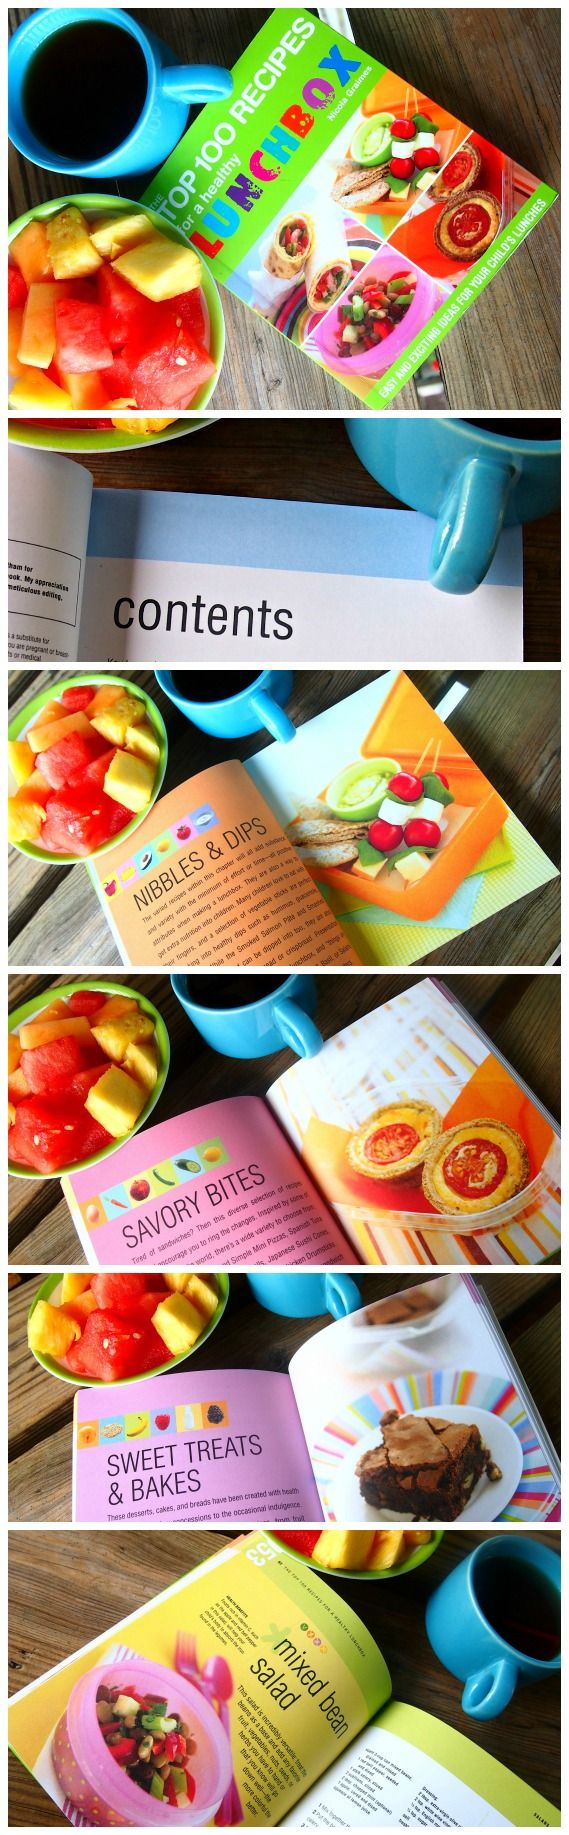 100 Healthy Lunch Recipes!  $5.00 at Kohls!